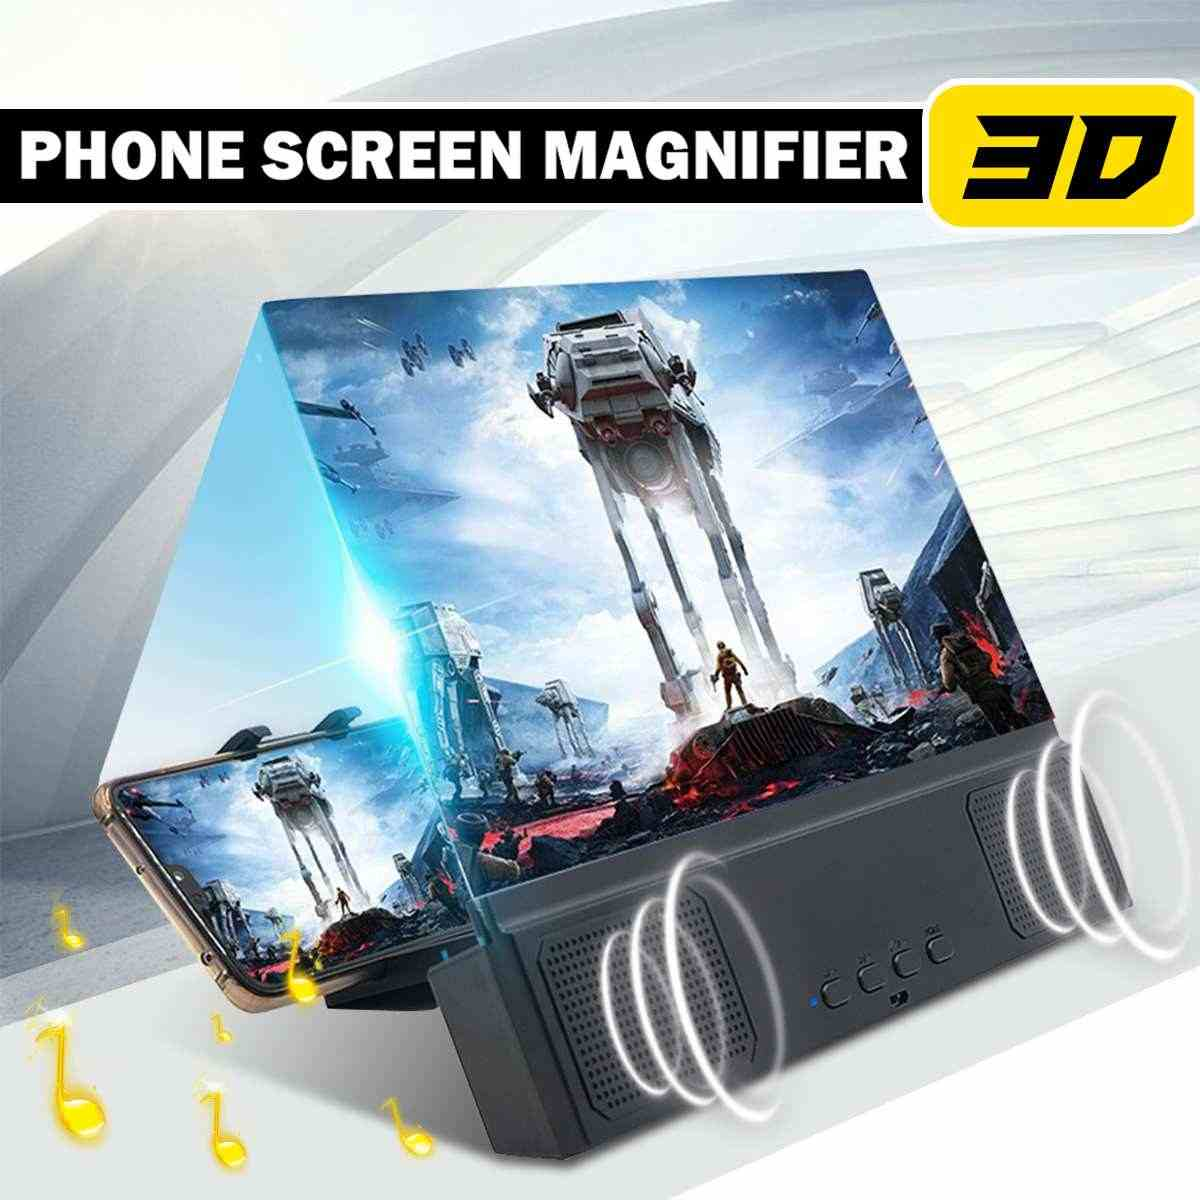 12inch 3D HD Telefoon Screen Magnifier Desktop Beugel Movie Video Versterker Met Bedrade Speaker Voor Smart Telefoon Expander Houder